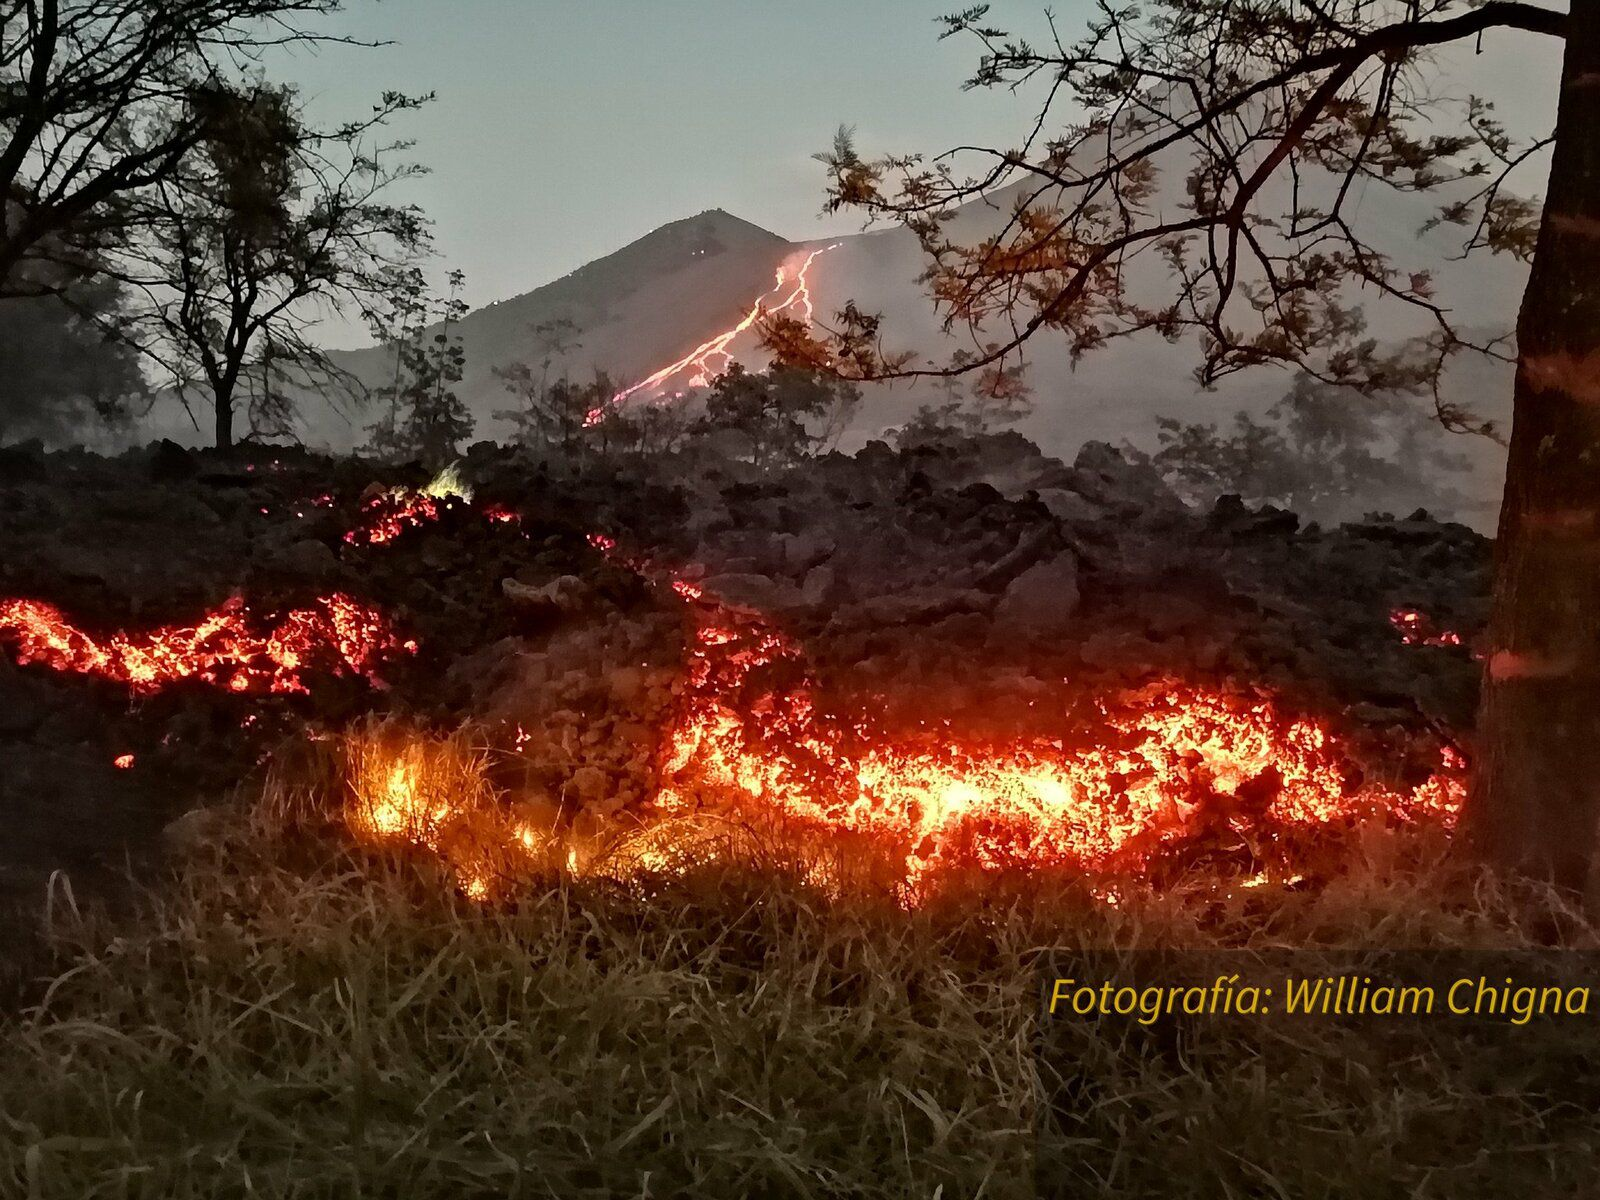 Pacaya - 03.30.2021- the lava flow burns everything in its path - photo William Chigna